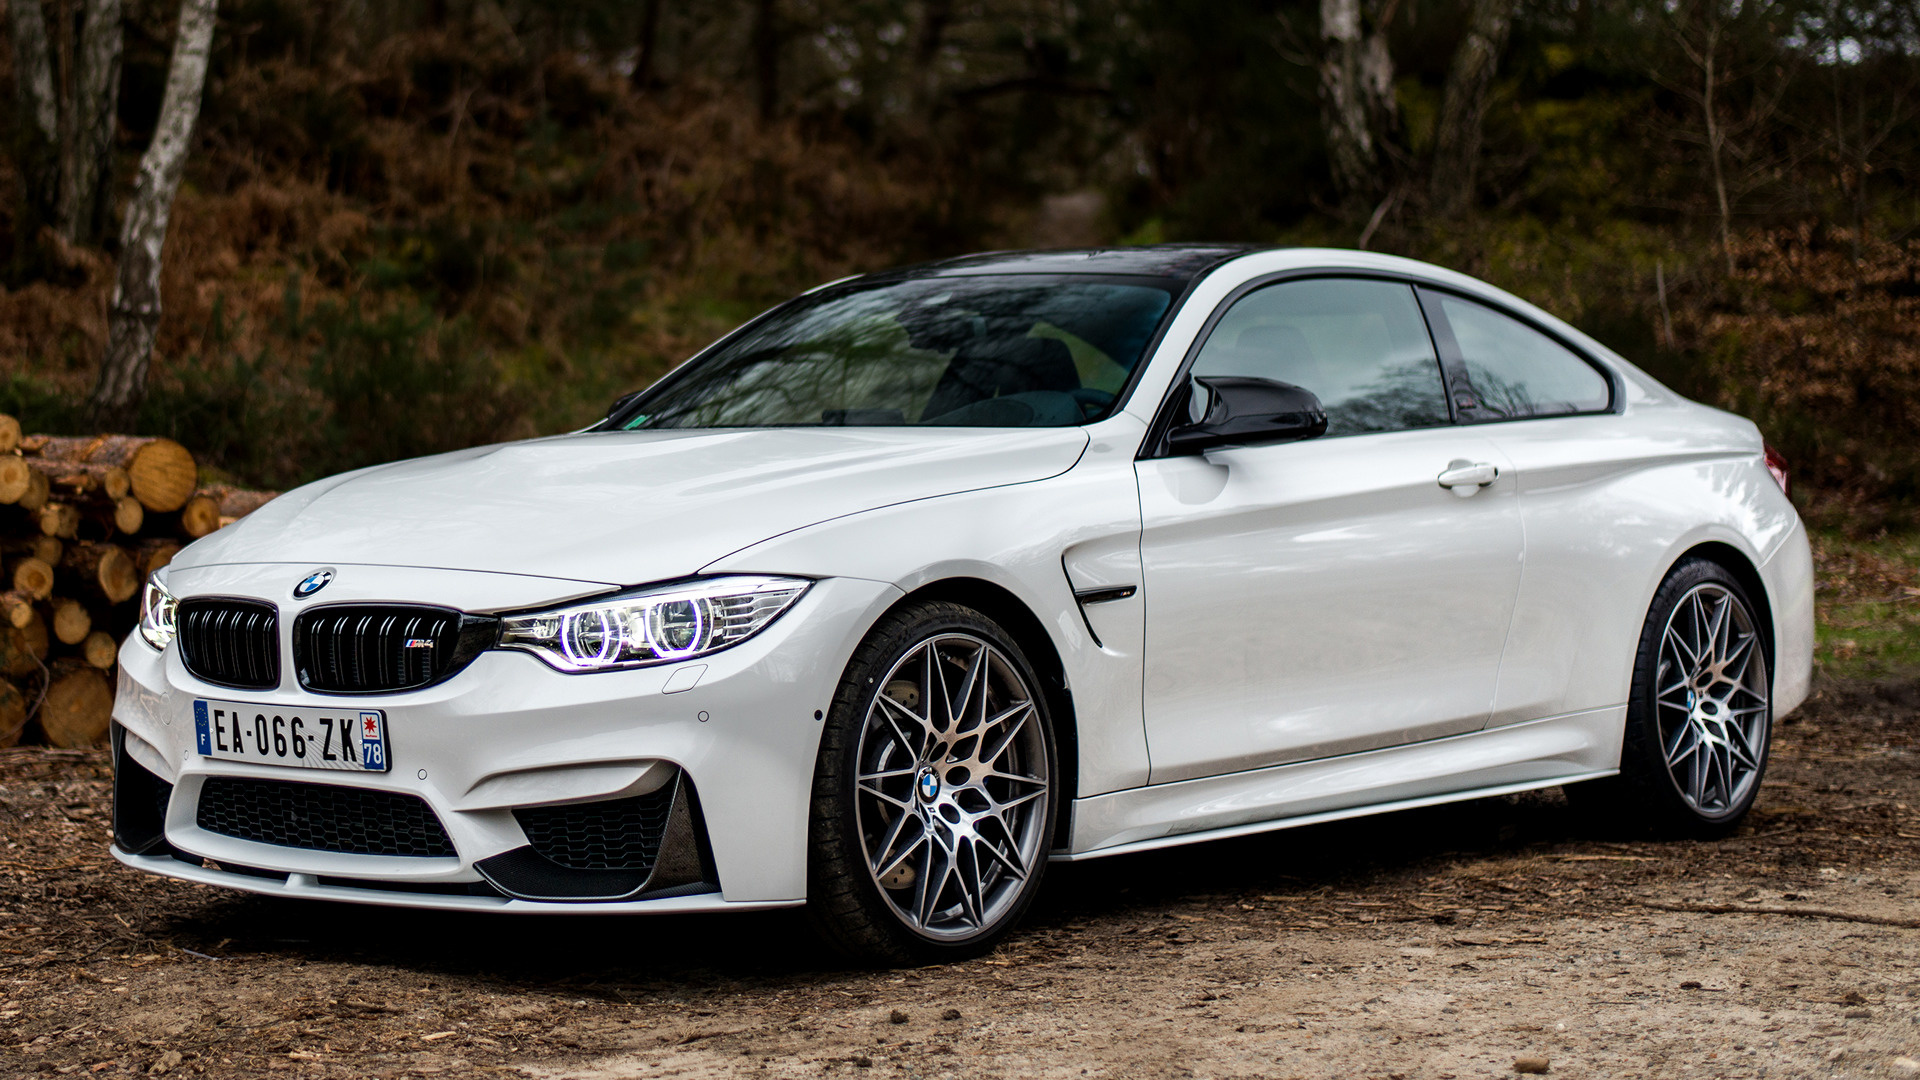 Bmw M4 Coupe Tour Auto Edition 2016 Wallpapers And Hd